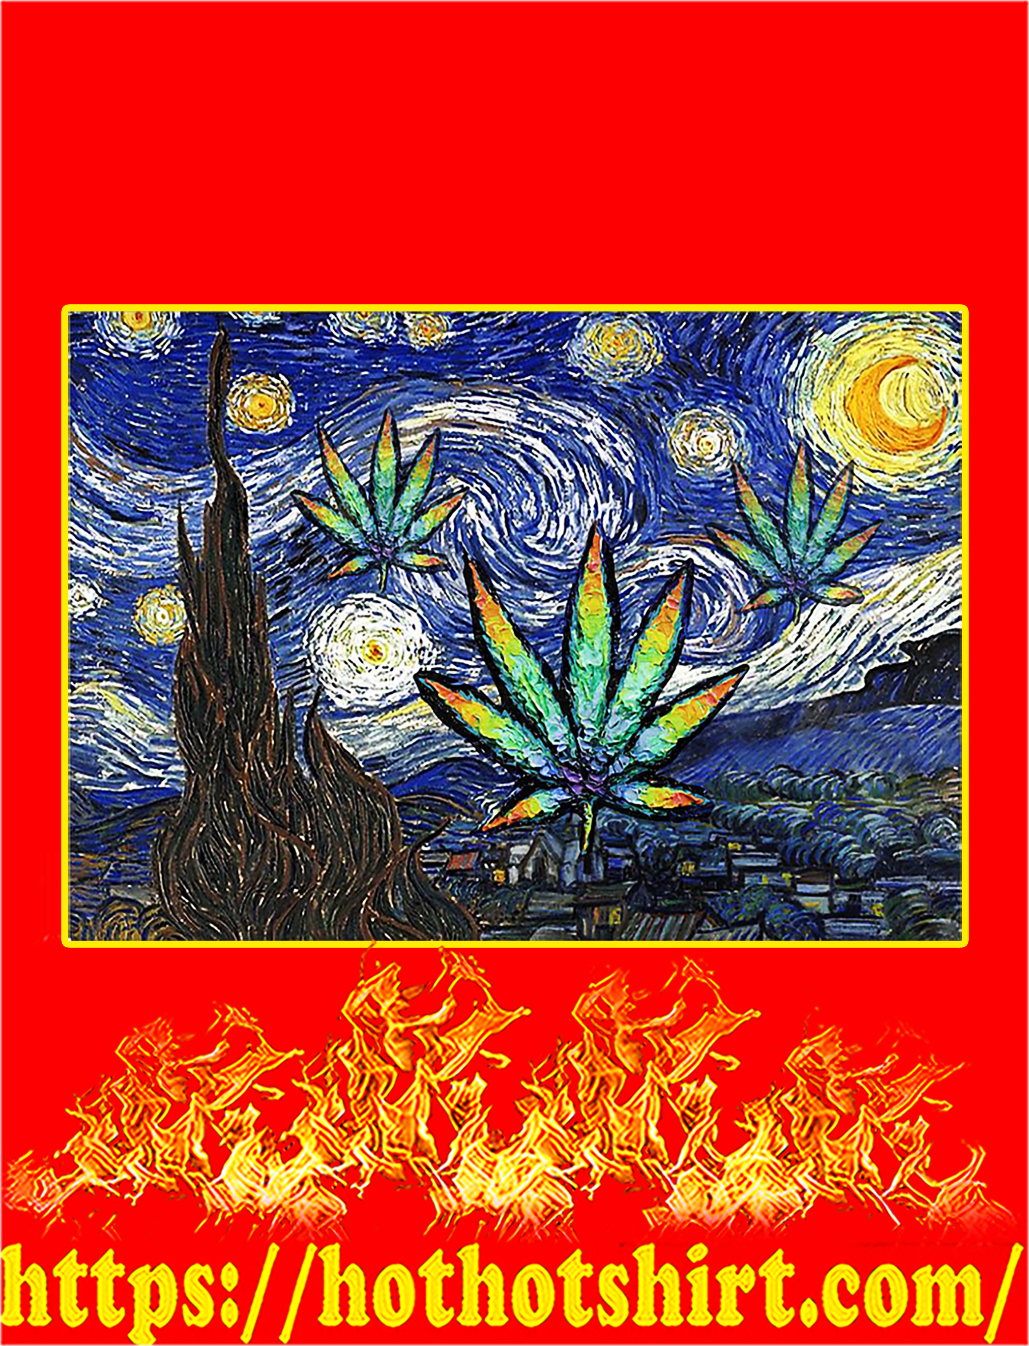 Weed cannabis starry night van gogh poster - A2